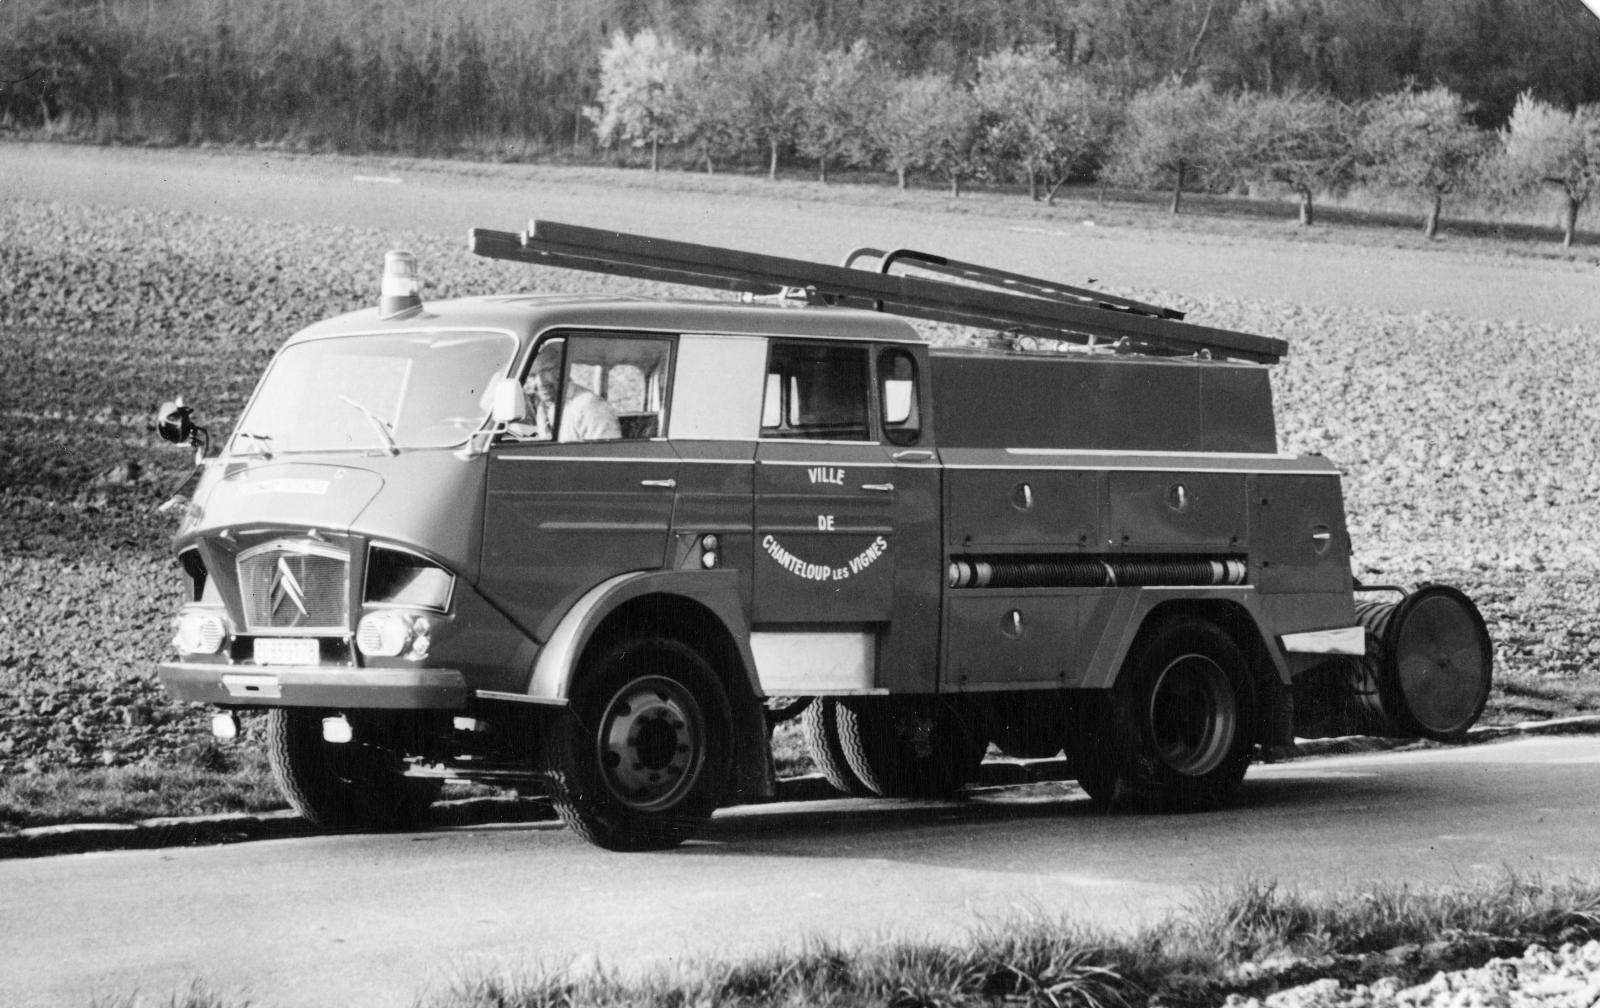 Camion tipo 350 - 1967